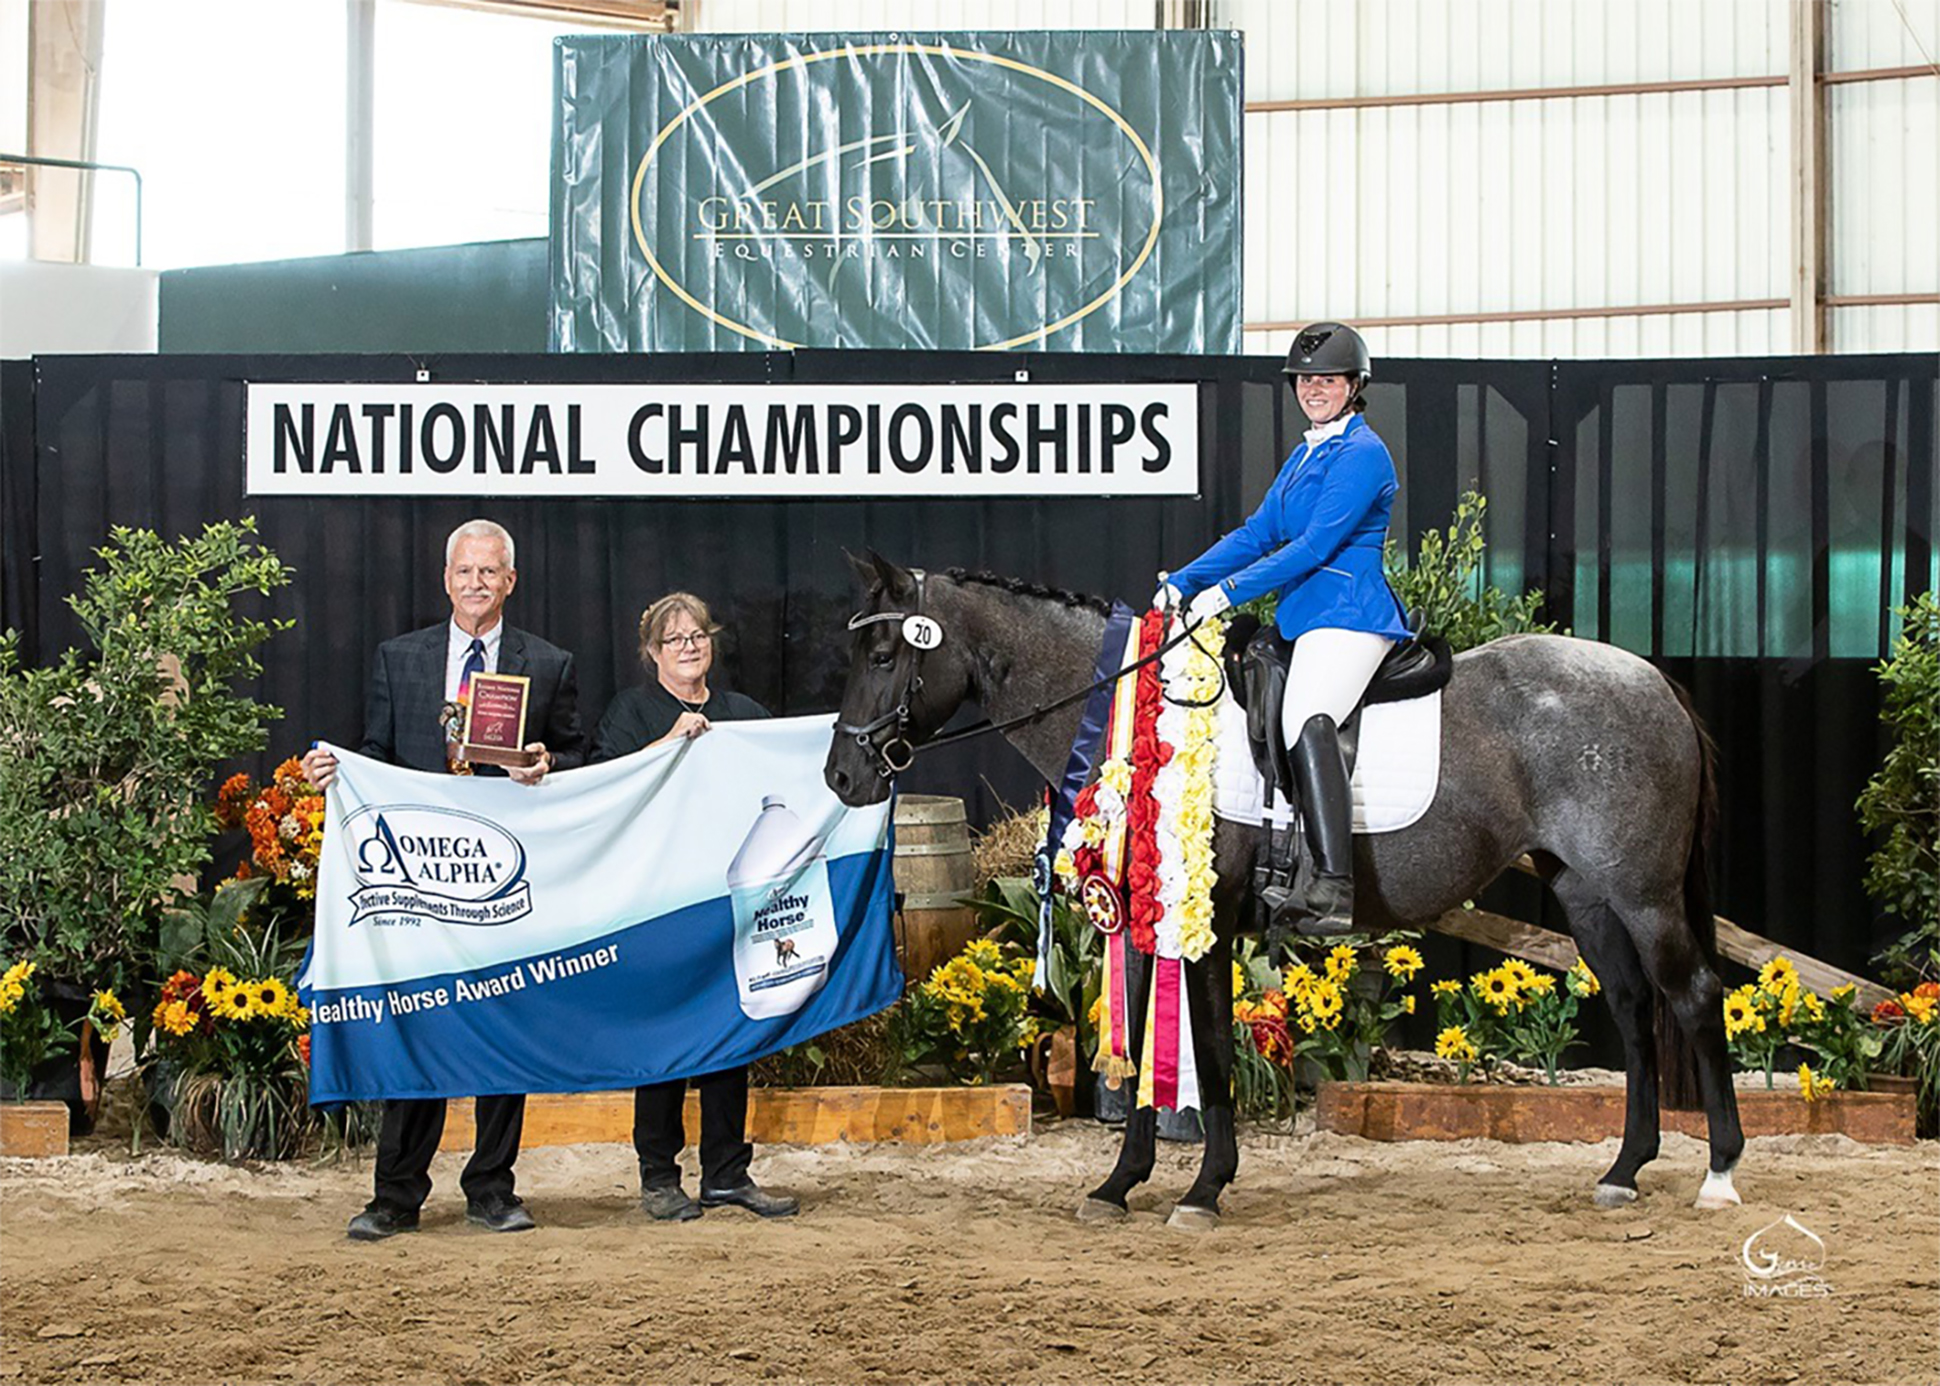 Natalie Lord-US-Magico's Blue Marquesa-Omega Alpha Healthy Horse Award-photo Genie Images_1000.jpg